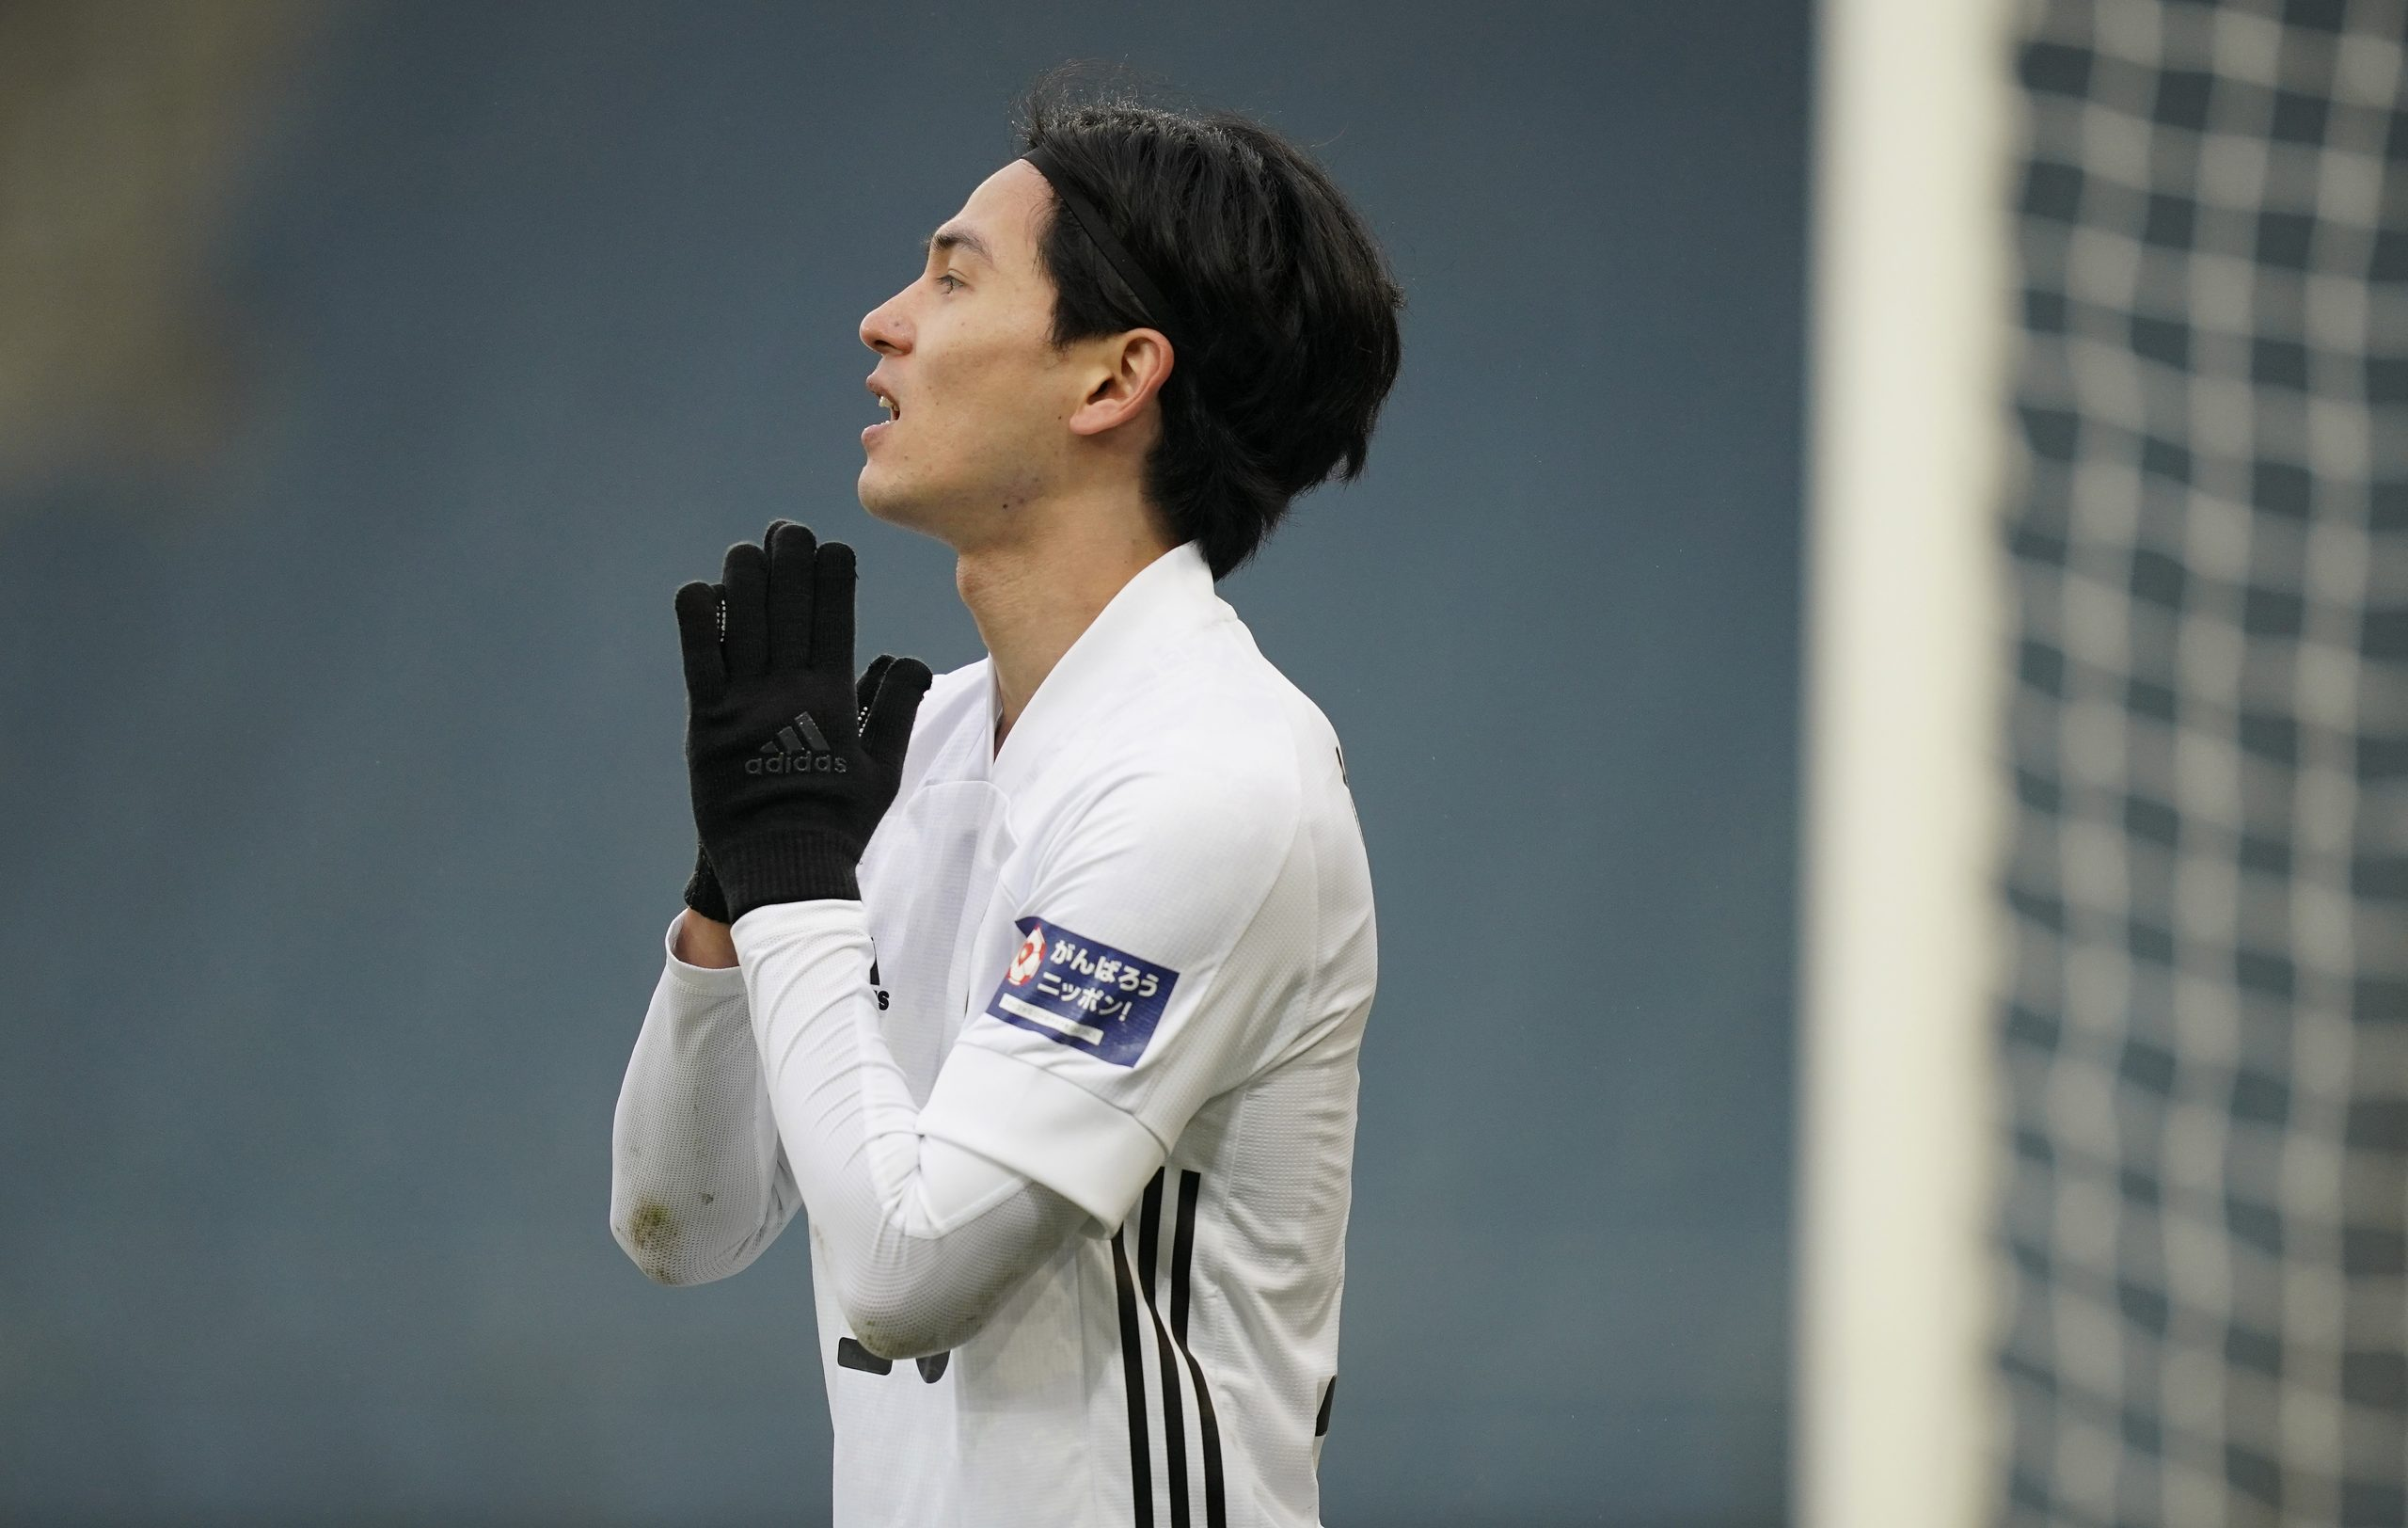 GRAZ, AUSTRIA - NOVEMBER 13: Takumi Minamino of Japan reacts during the international friendly match between Japan and Panama at Merkur Arena on November 13, 2020 in Graz, Austria. (Photo by Christian Hofer/Getty Images)